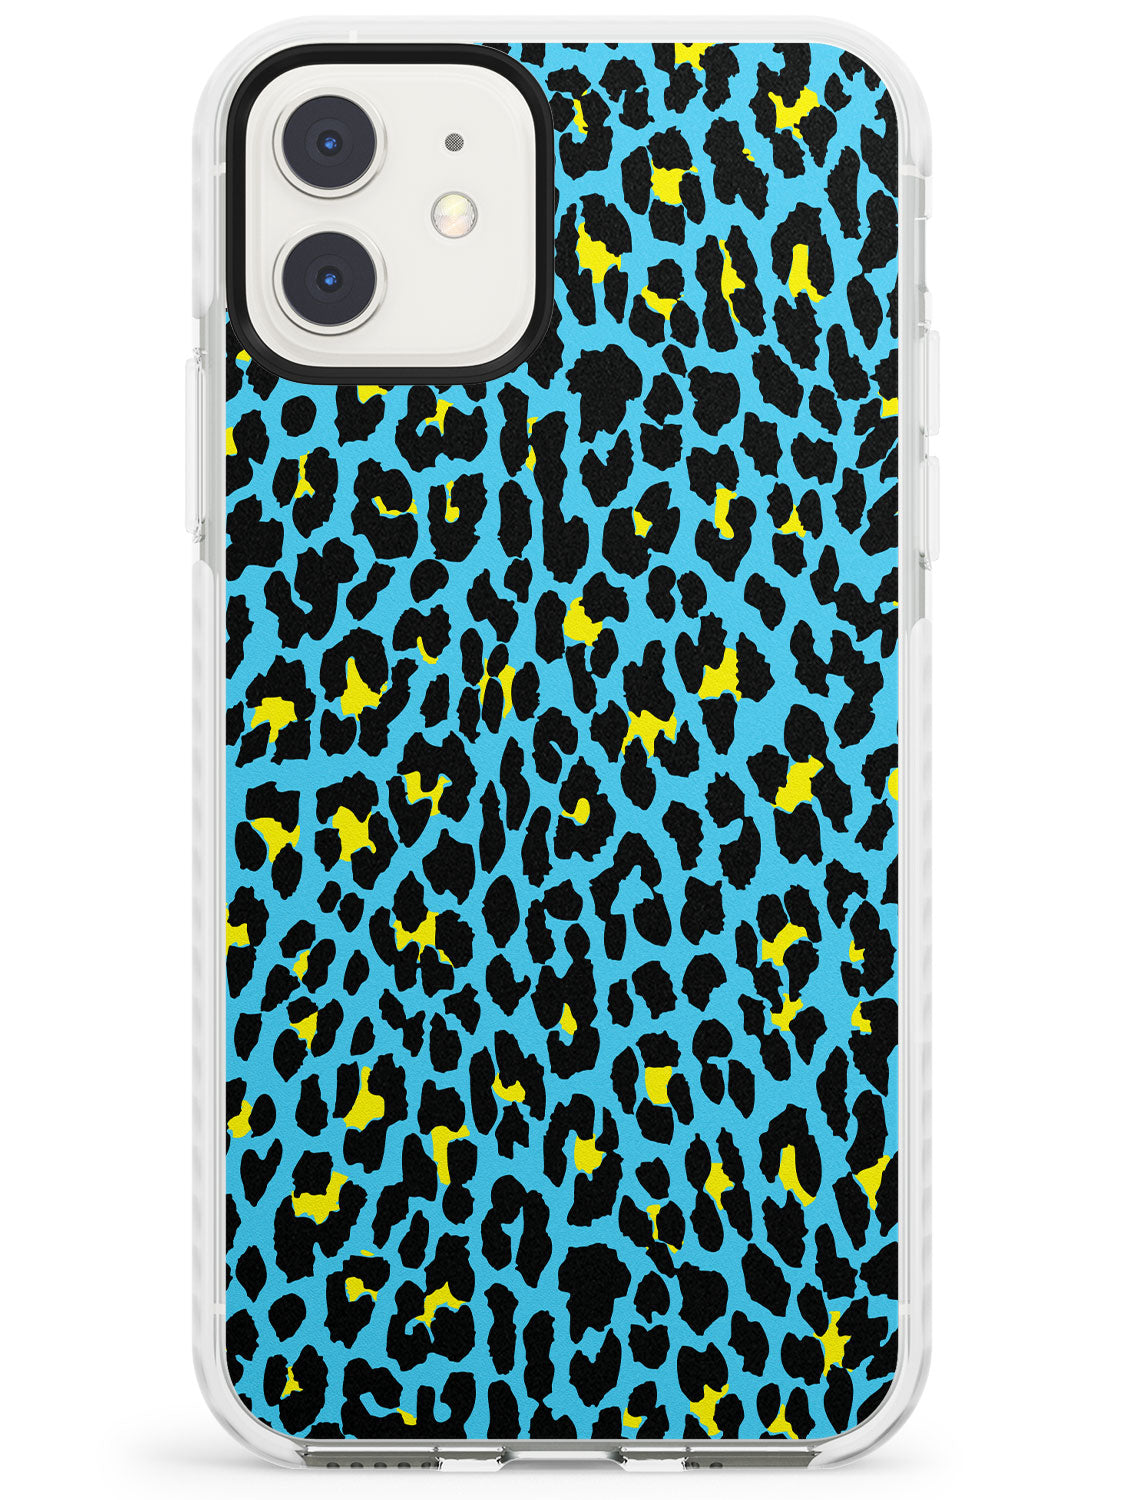 Yellow on Blue Leopard iPhone Case by Case Warehouse ®